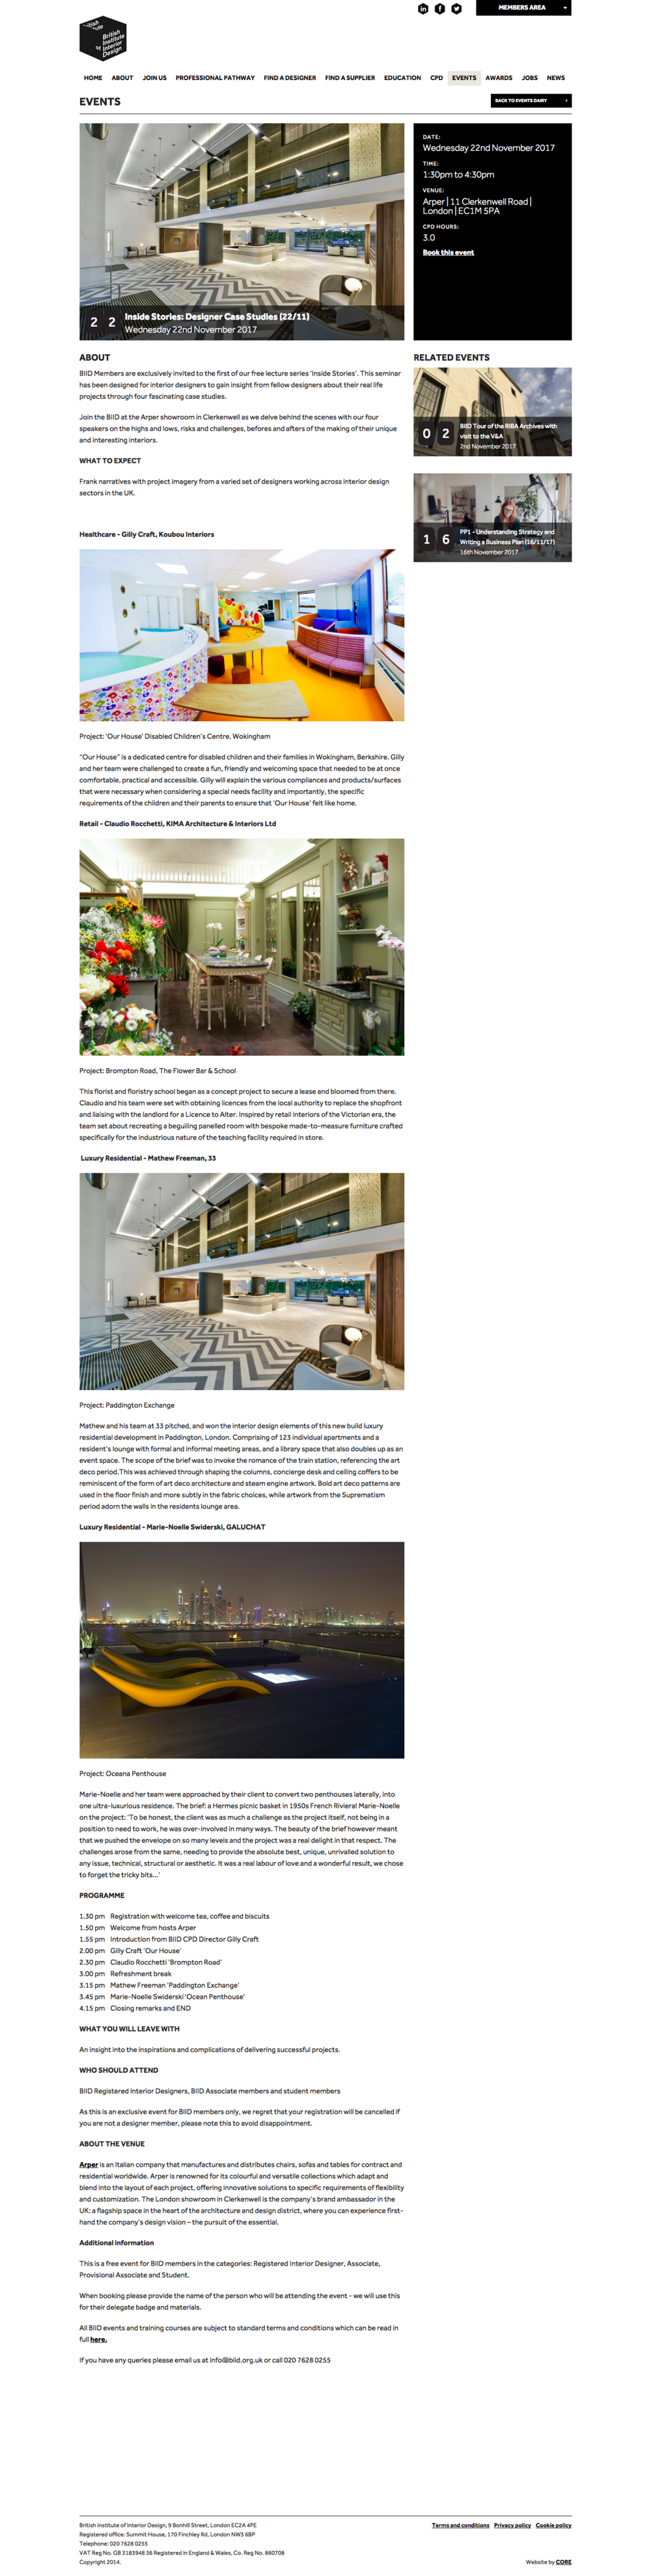 screencapture-biid-org-uk-events-inside-stories-designer-case-studies-1507837851445.png